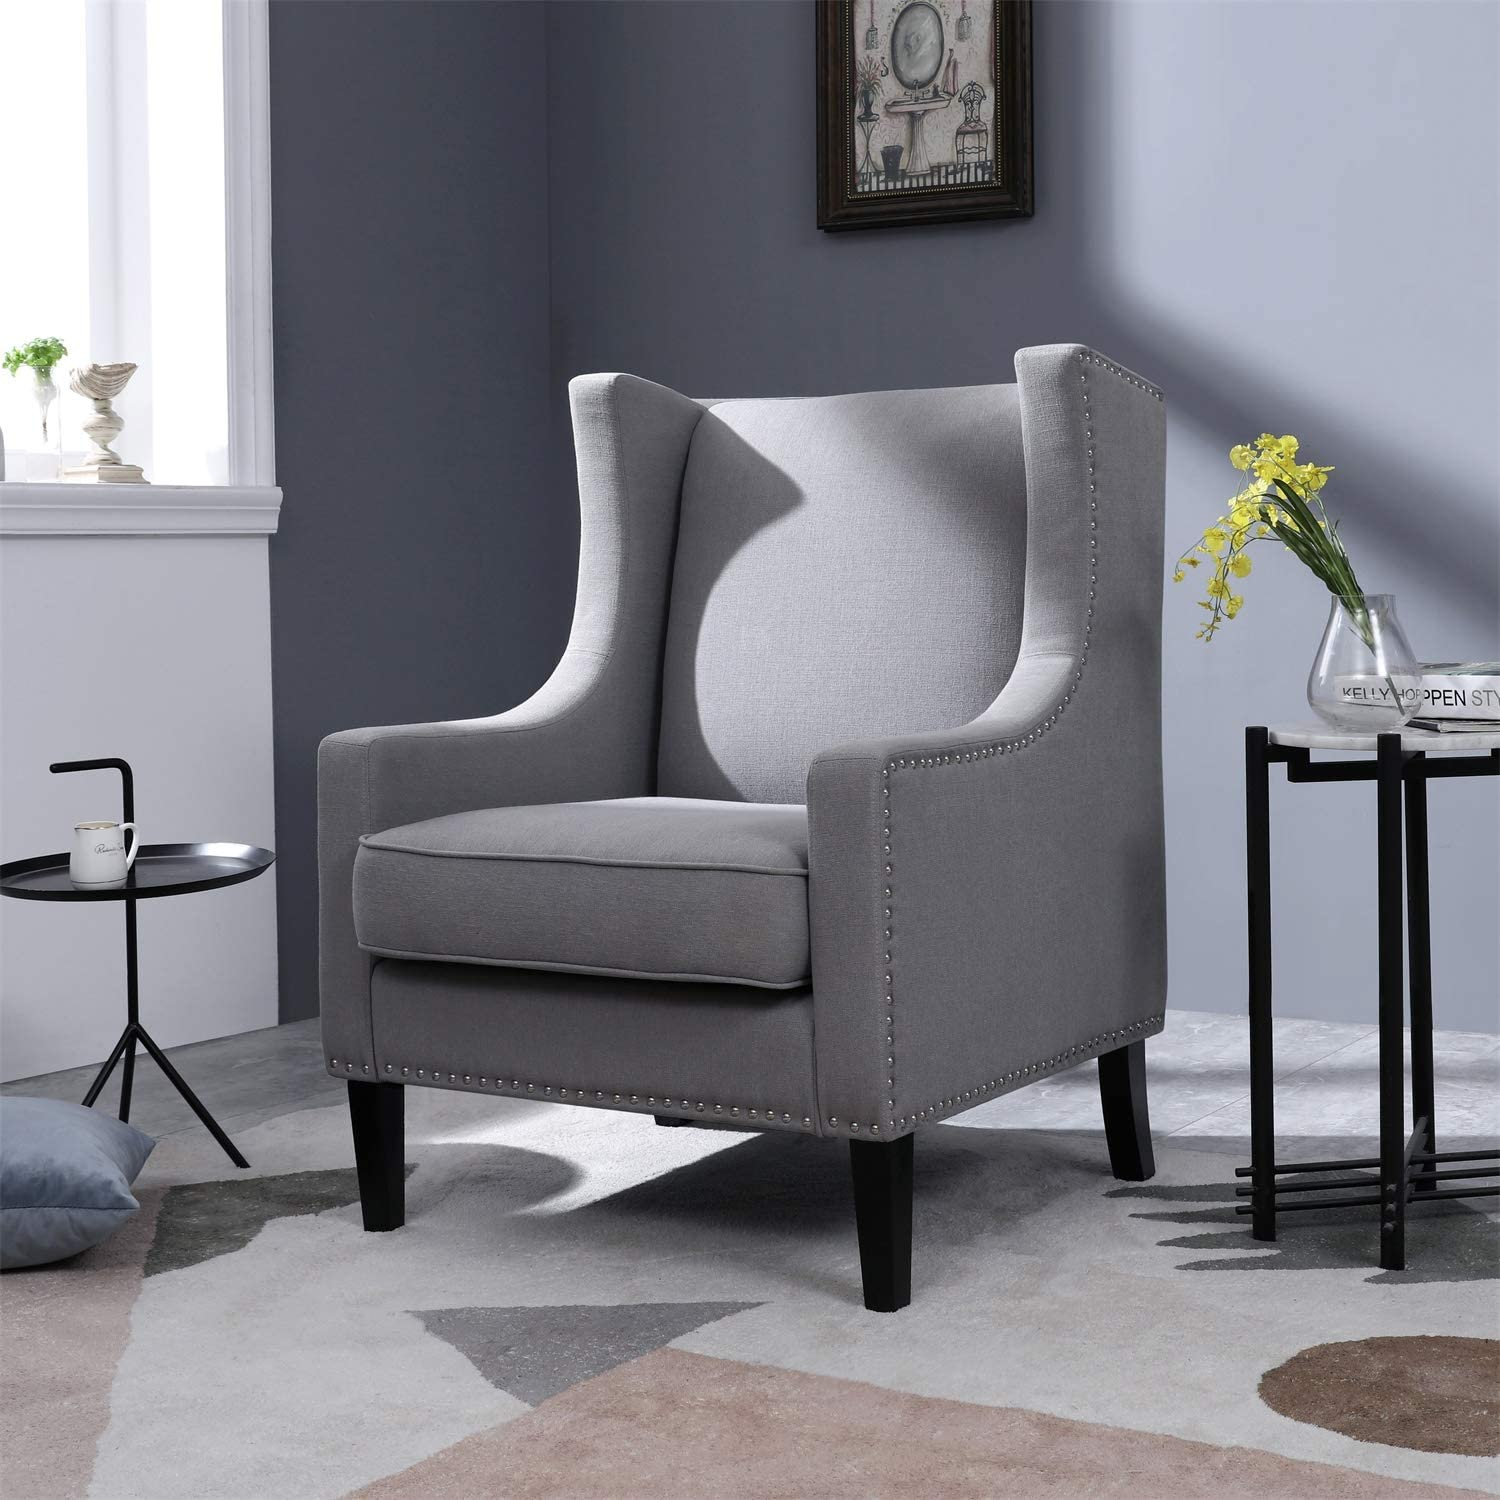 Top Space Accent Chair Living Room Chairs Arm Chair Single Sofa Upholstered  Gray Comfy Fabric Mid-Century Modern Furniture for Bedroom Office (11PCS-11,